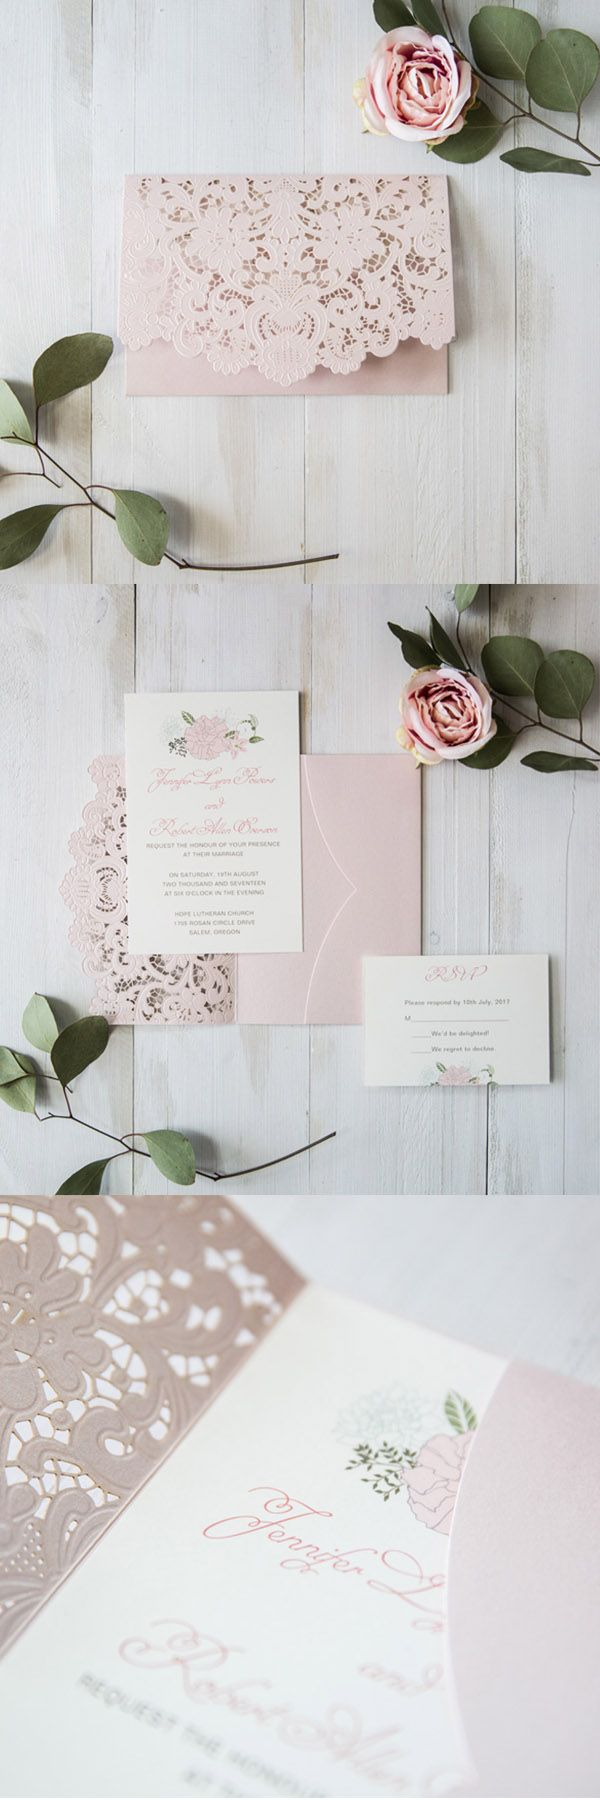 Best 25 Wedding invitation cards ideas – Cheap Invitation Card